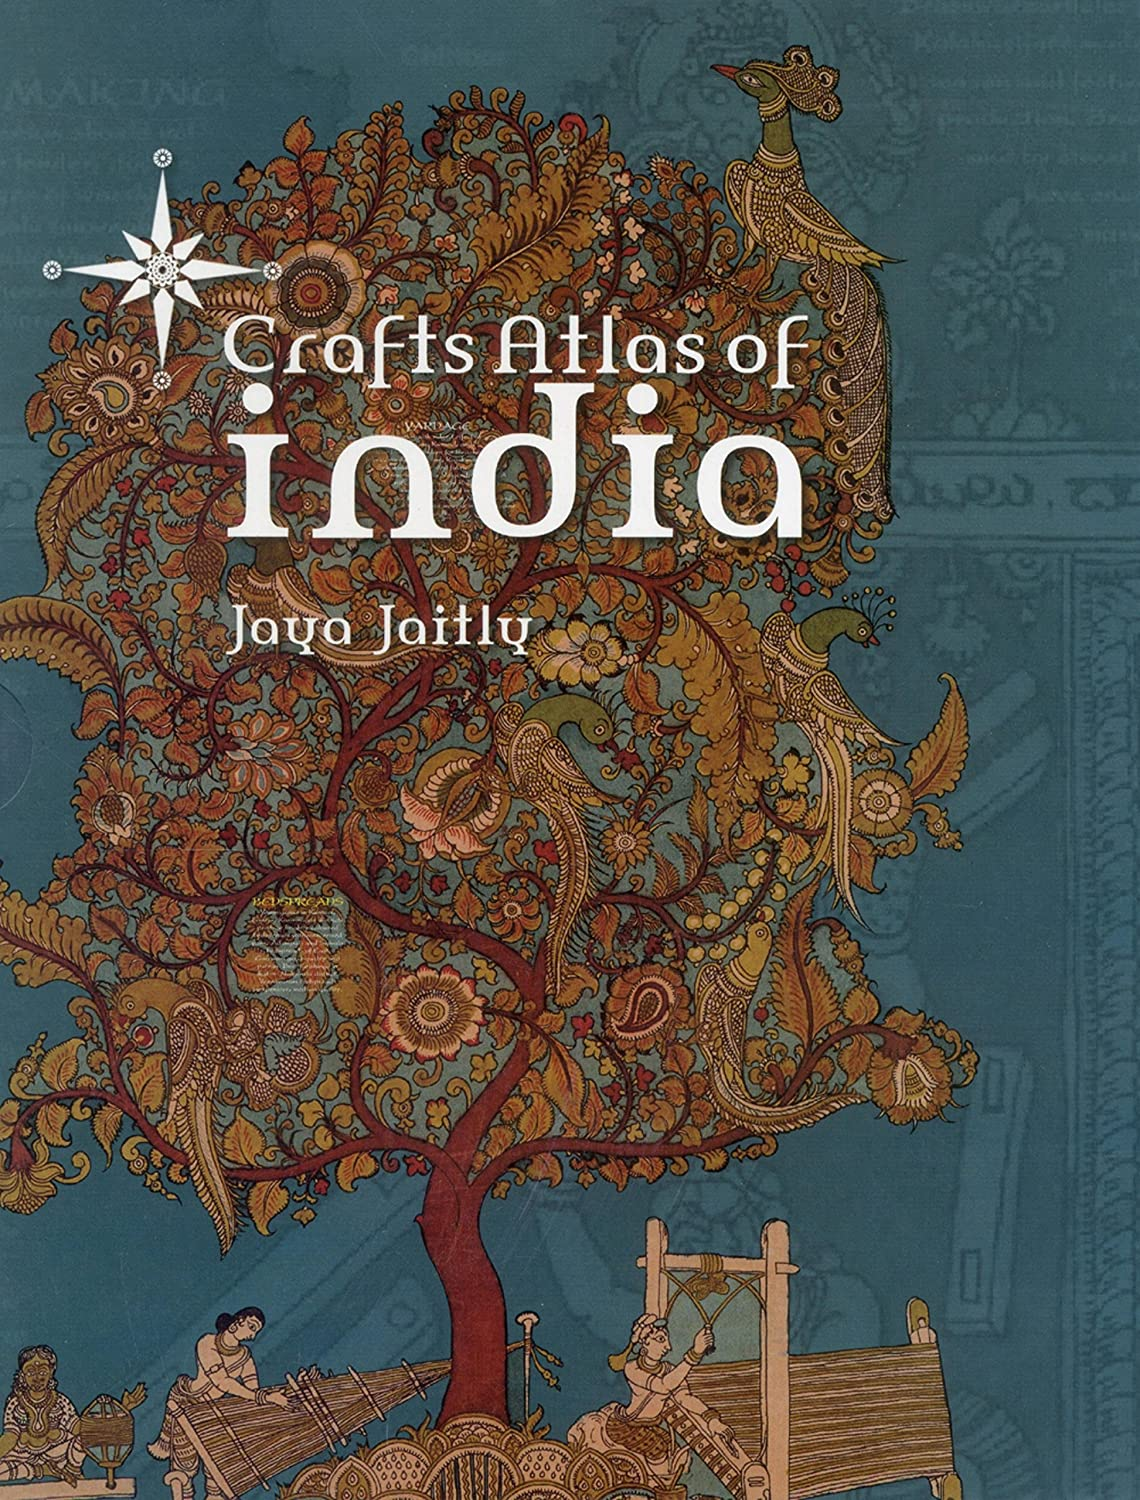 Craft Atlas of India